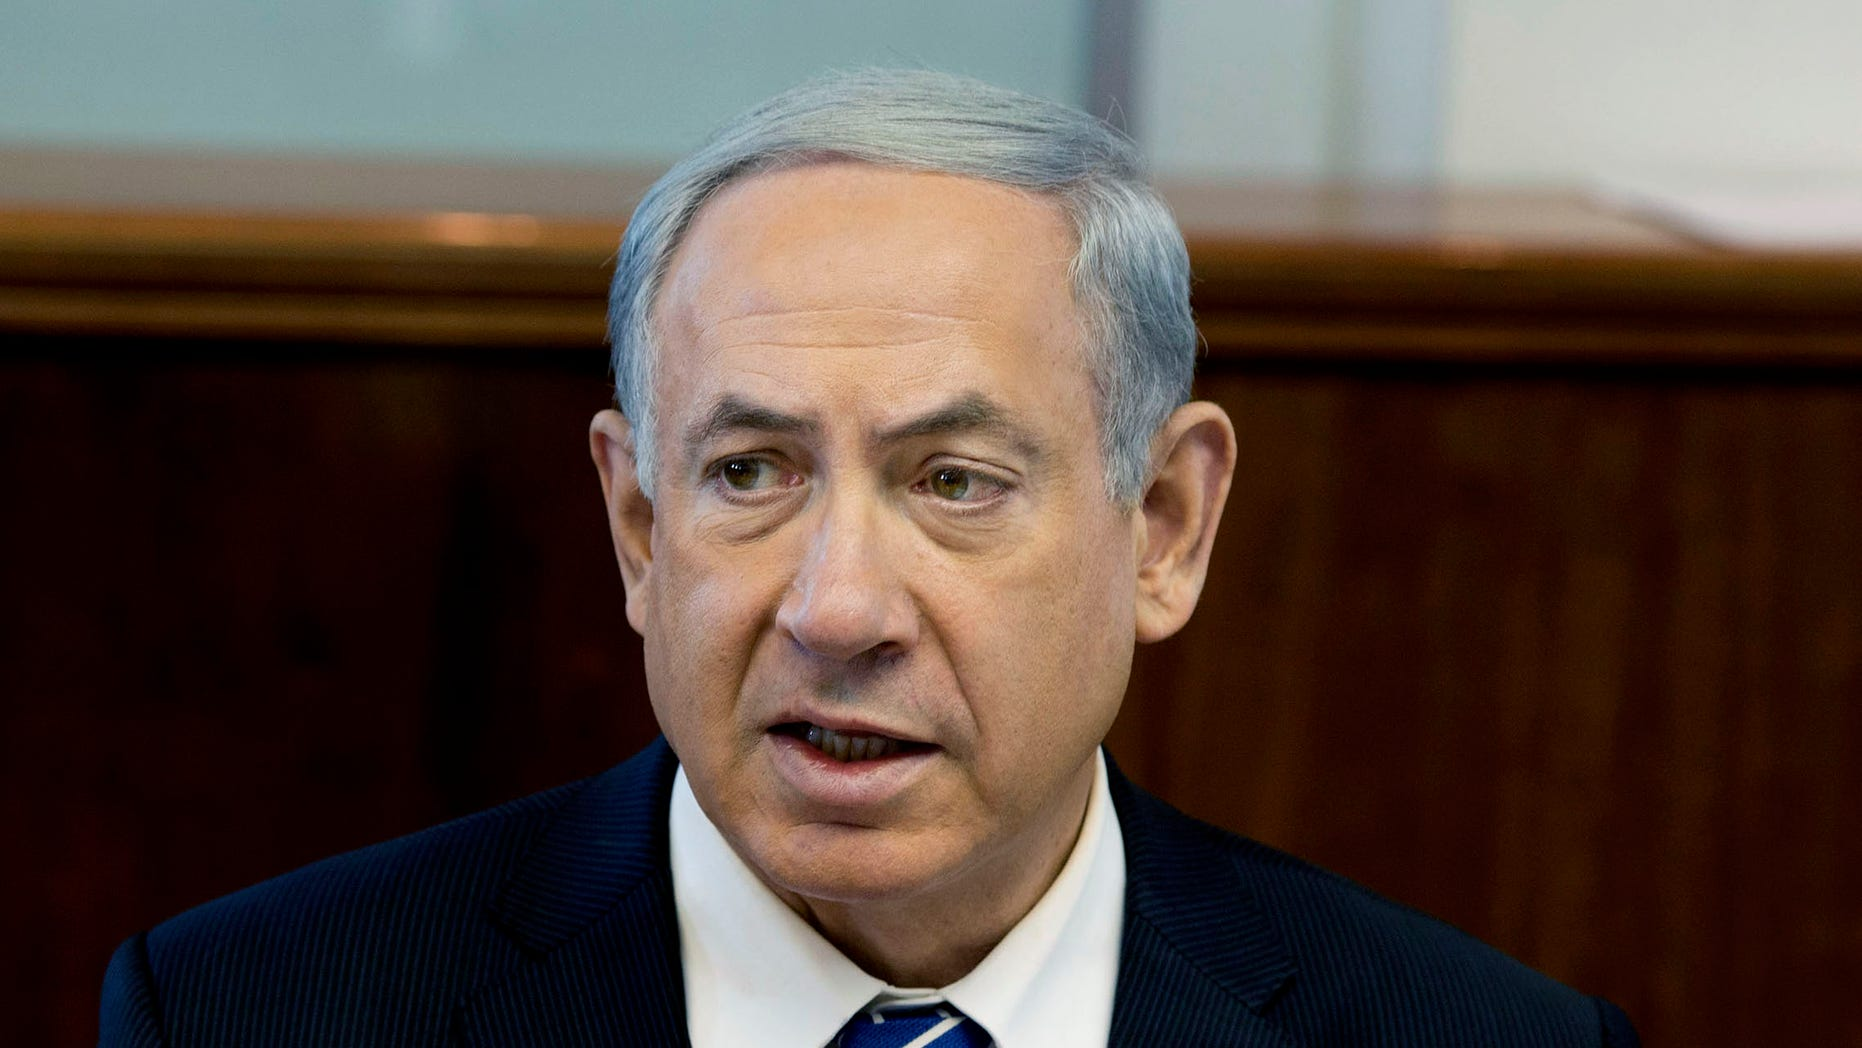 Israel's Prime Minister Benjamin Netanyahu speaks during the weekly cabinet meeting in Jerusalem, Sunday, Jan. 19, 2014. (AP Photo/Ilia Yefimovich, Pool)